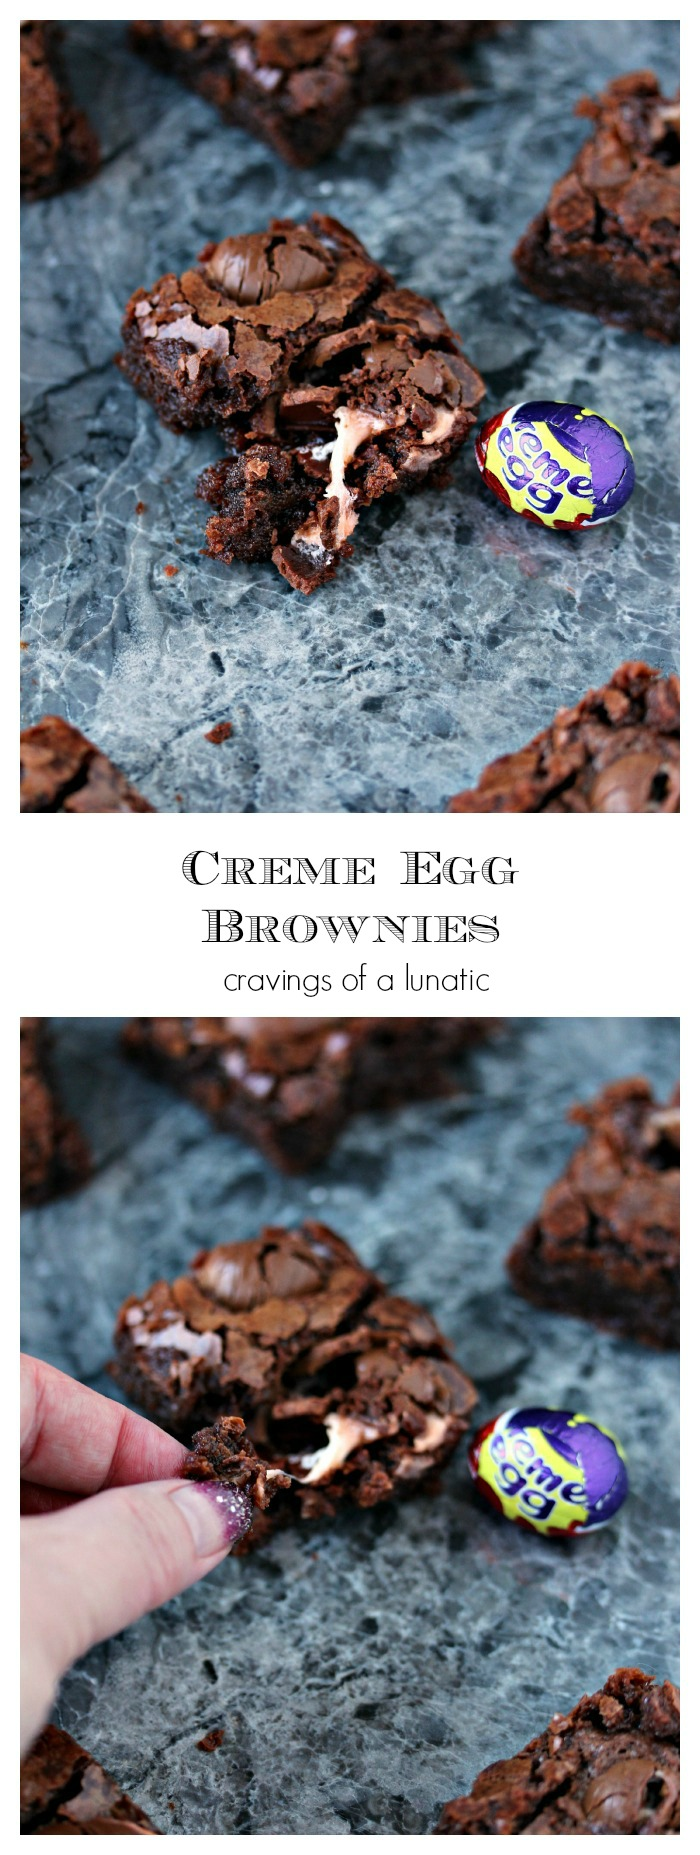 Creme Egg Brownies. Ooey, gooey, fudgy chocolate brownies filled with creme eggs. If you love creme eggs as much as we do this recipe is for YOU! Whip up a batch, or ten, this holiday season!